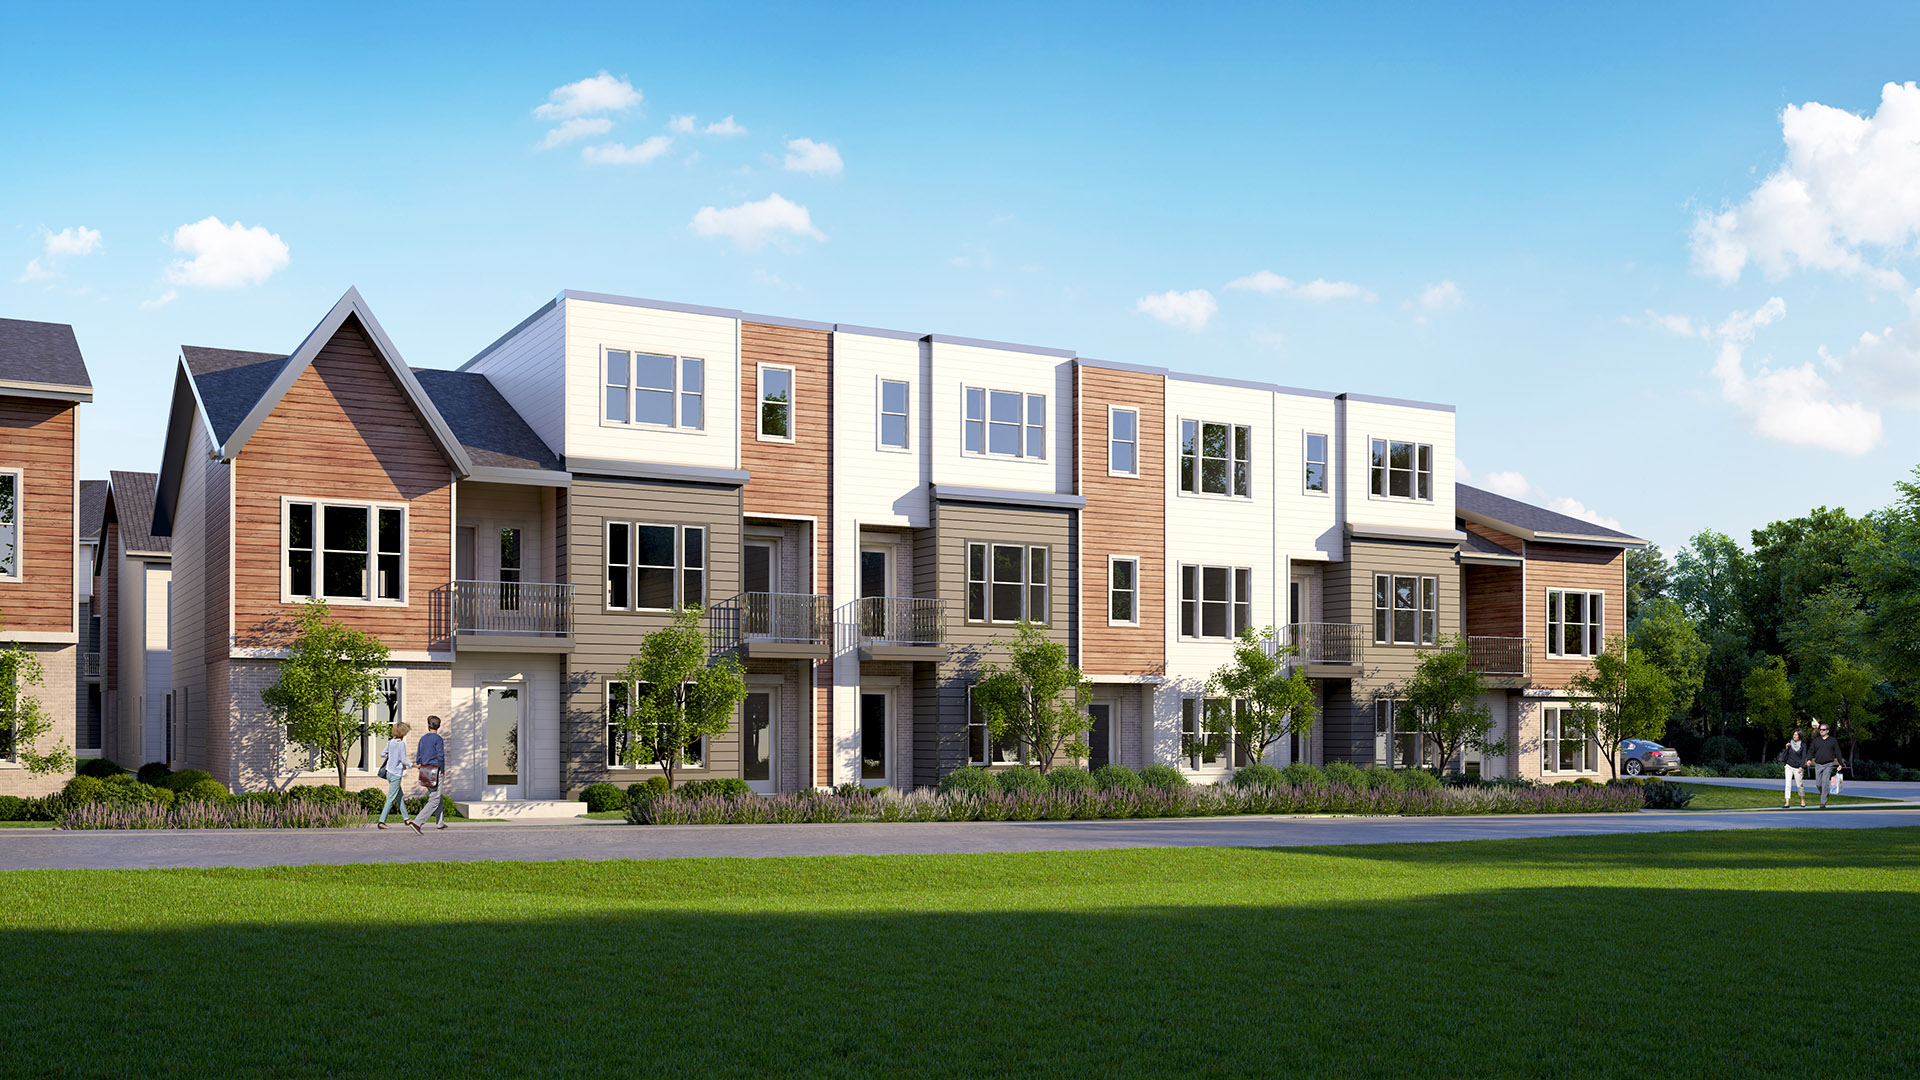 RMH_Exterior_Townhomes_EyeLevel